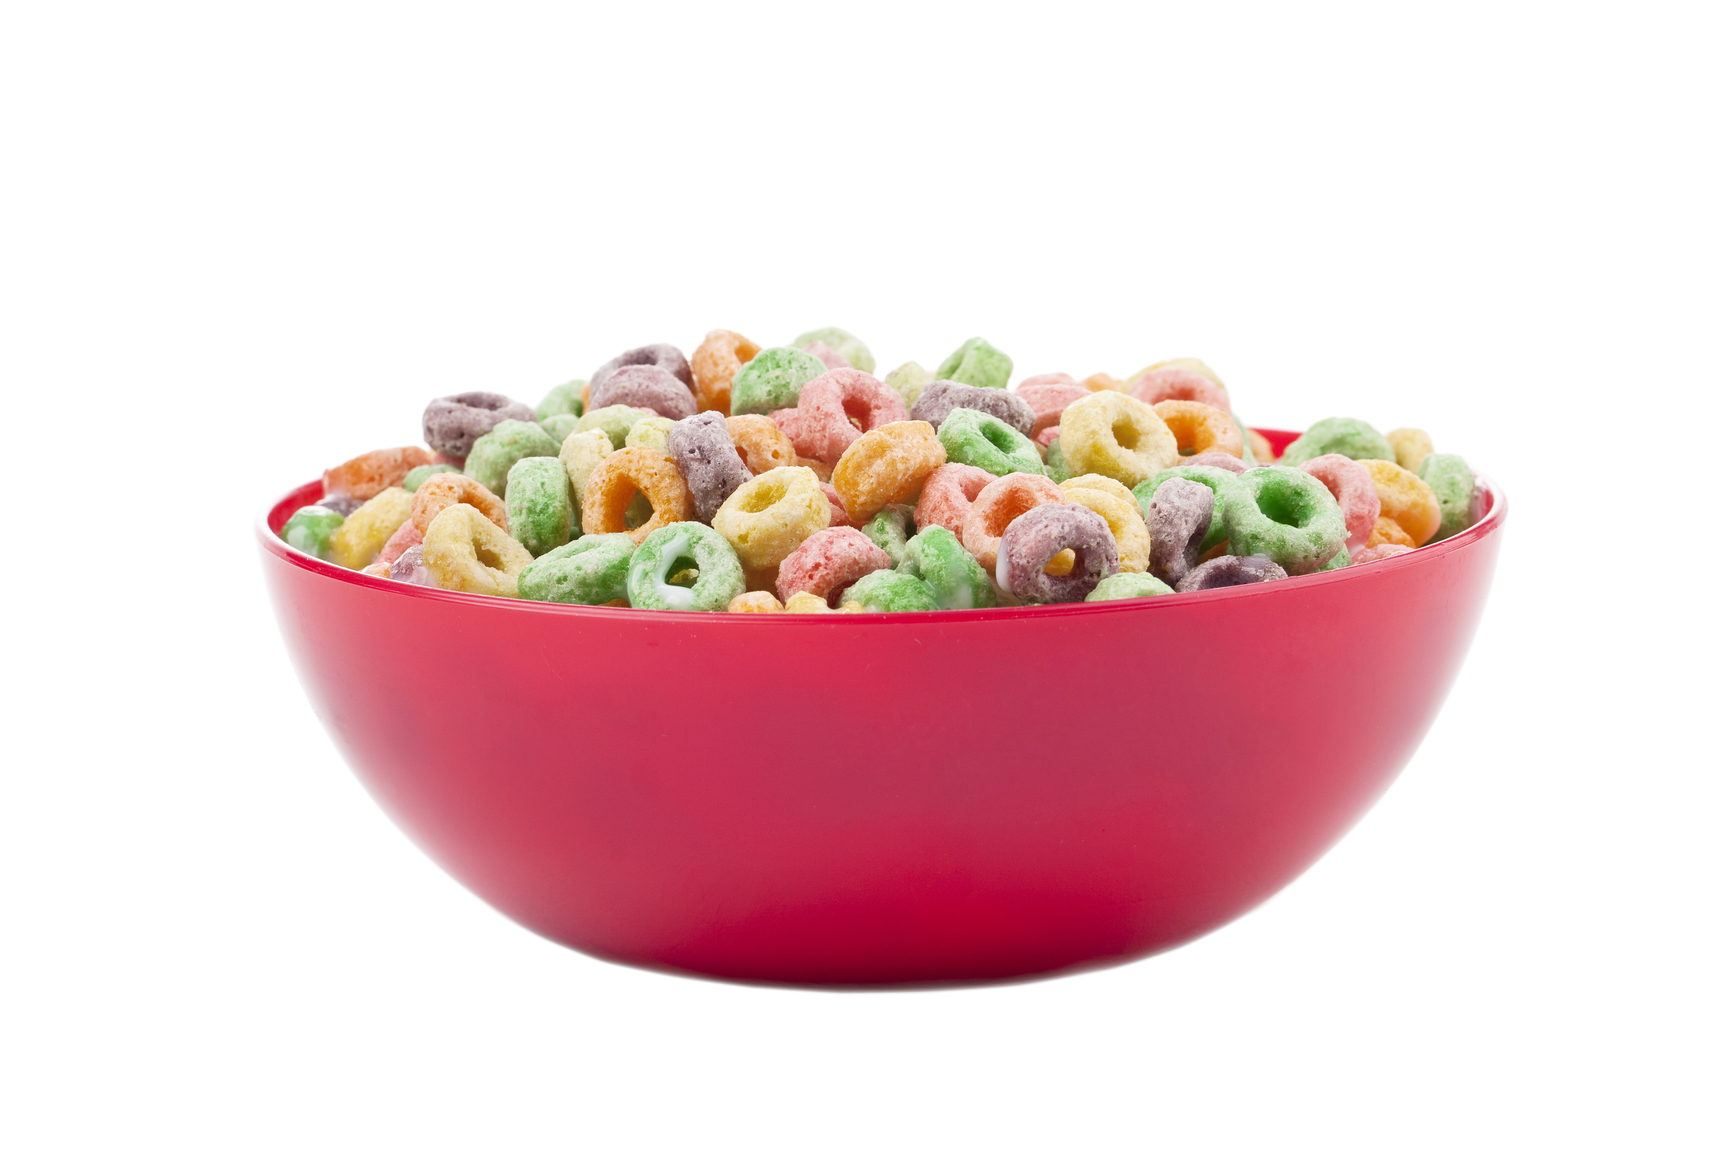 a bowl with colorful cereals